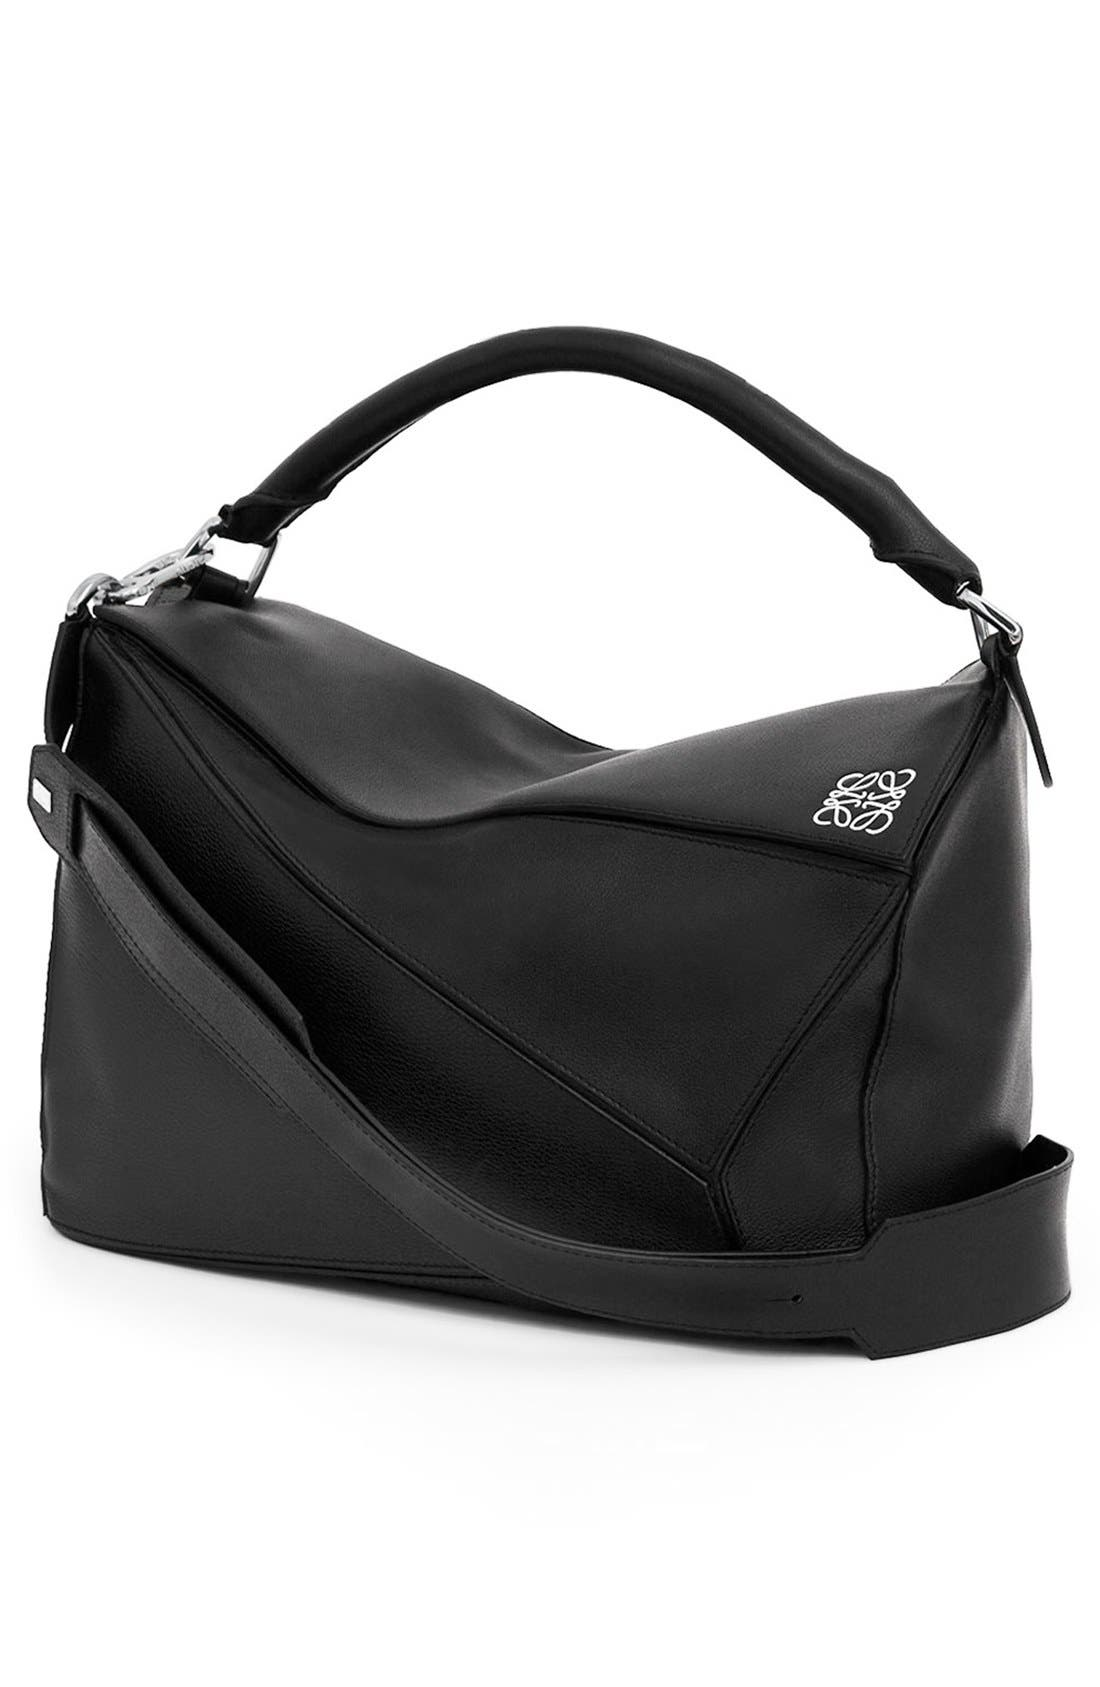 Alternate Image 1 Selected - Loewe 'Large Puzzle' Calfskin Leather Bag